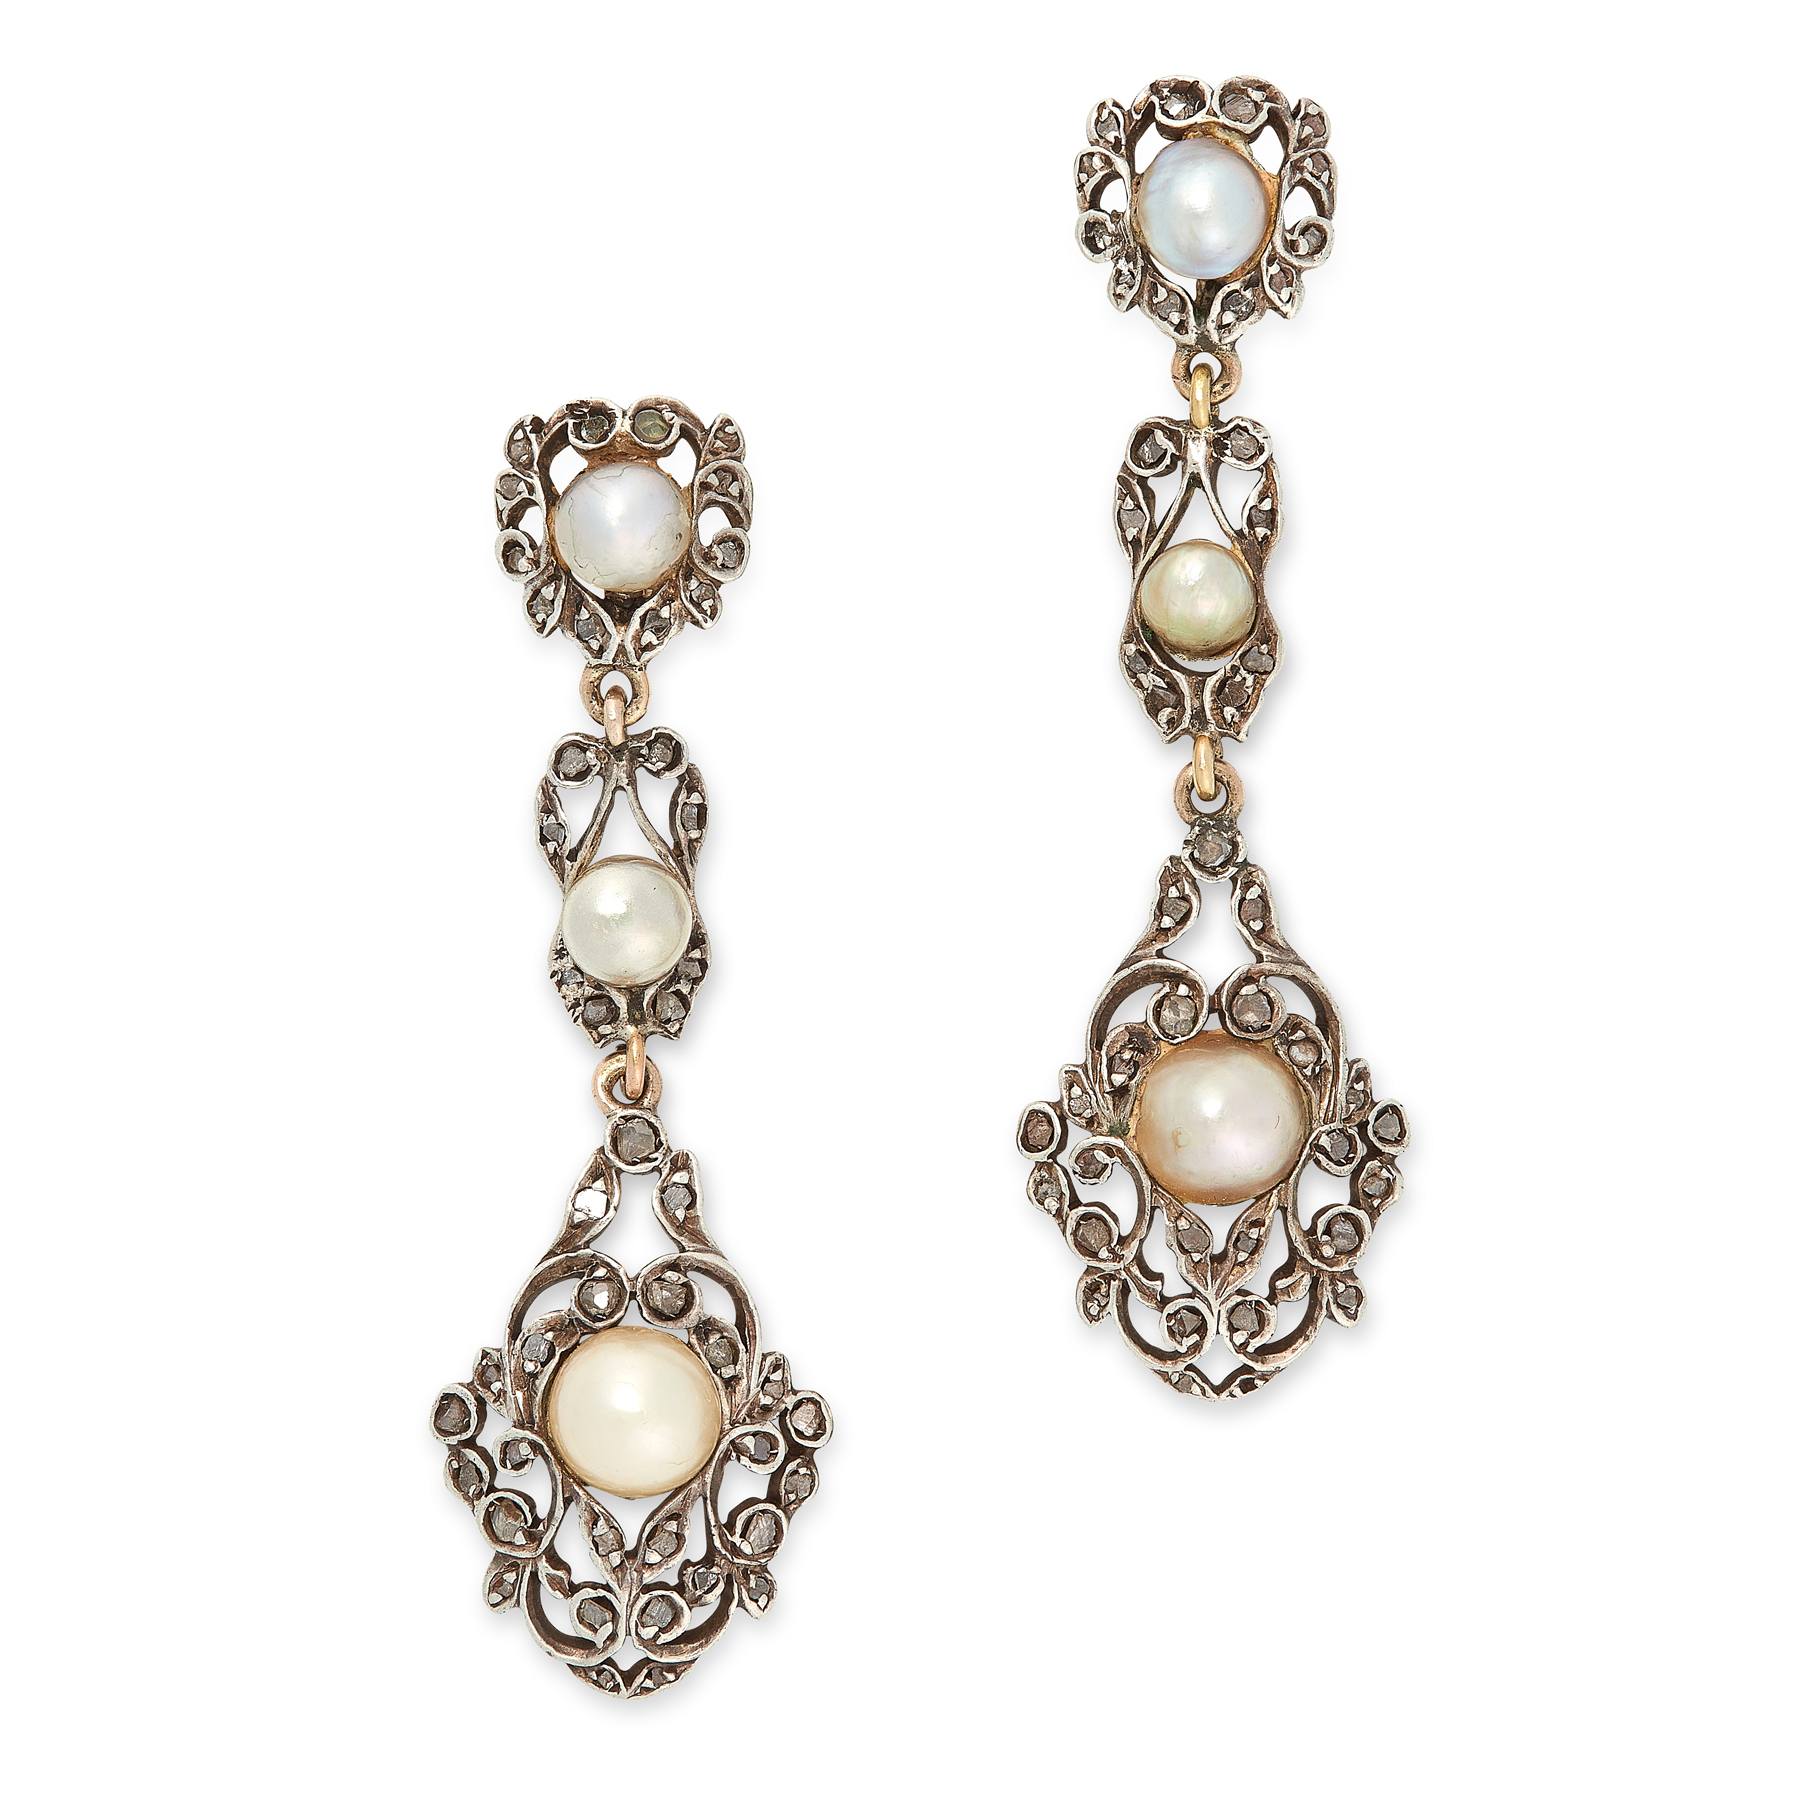 A PAIR OF ANTIQUE PEARL AND DIAMOND EARRINGS in yellow gold and silver, the articulated bodies